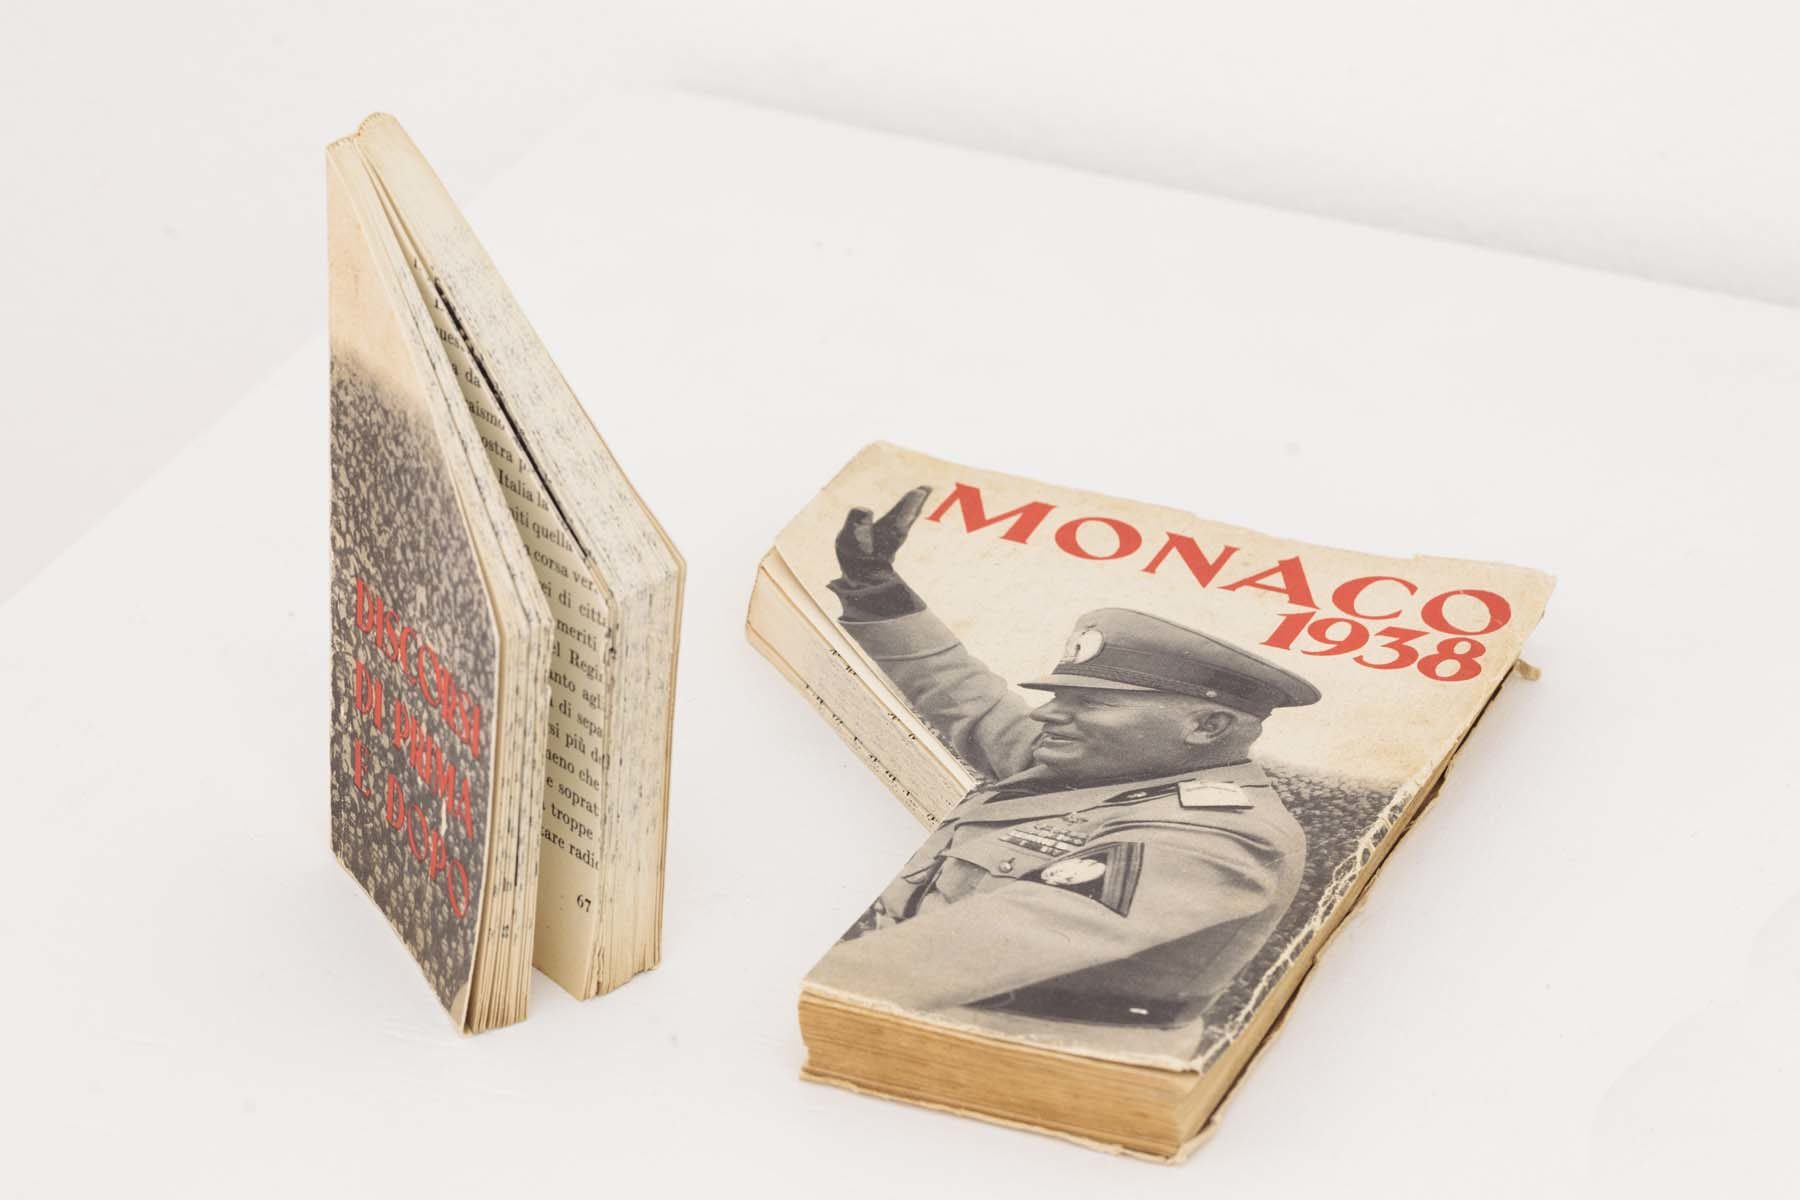 G. Morbin, Libero, 2007, cutted vintage book, 21.5 x 16 cm